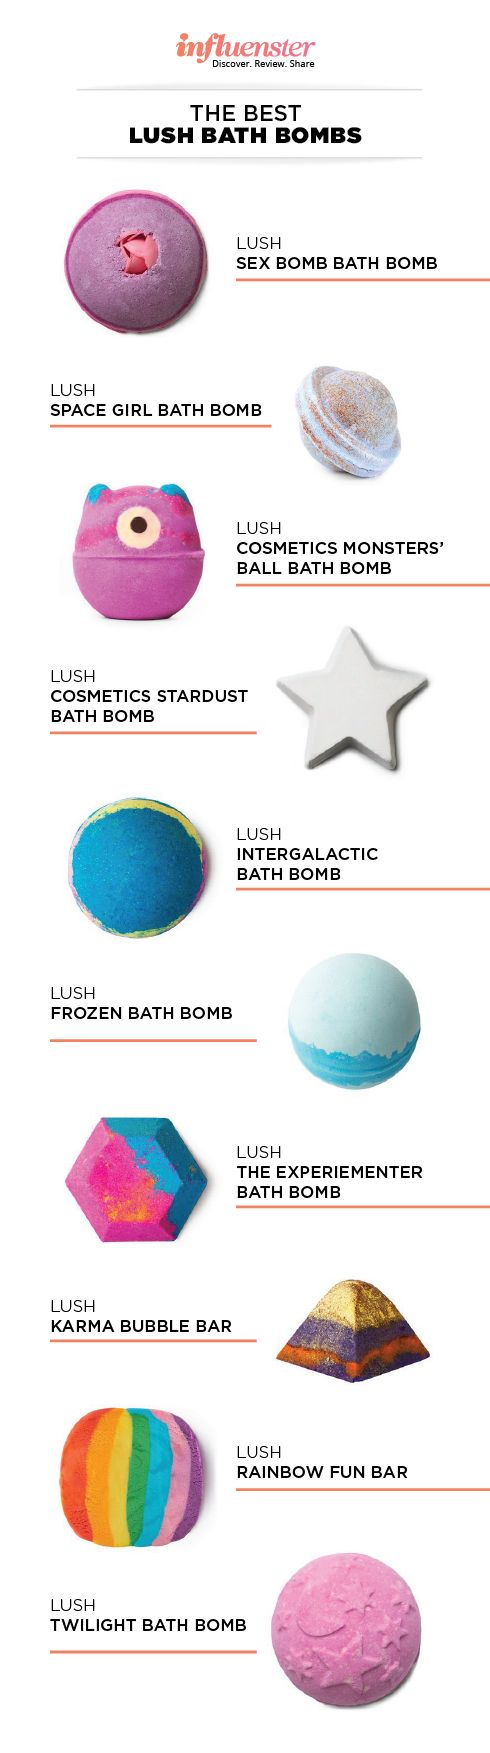 37K Reviews: The Best LUSH Bath Bombs - Sign up here to try products for FREE www.influenster.com/r/2735455